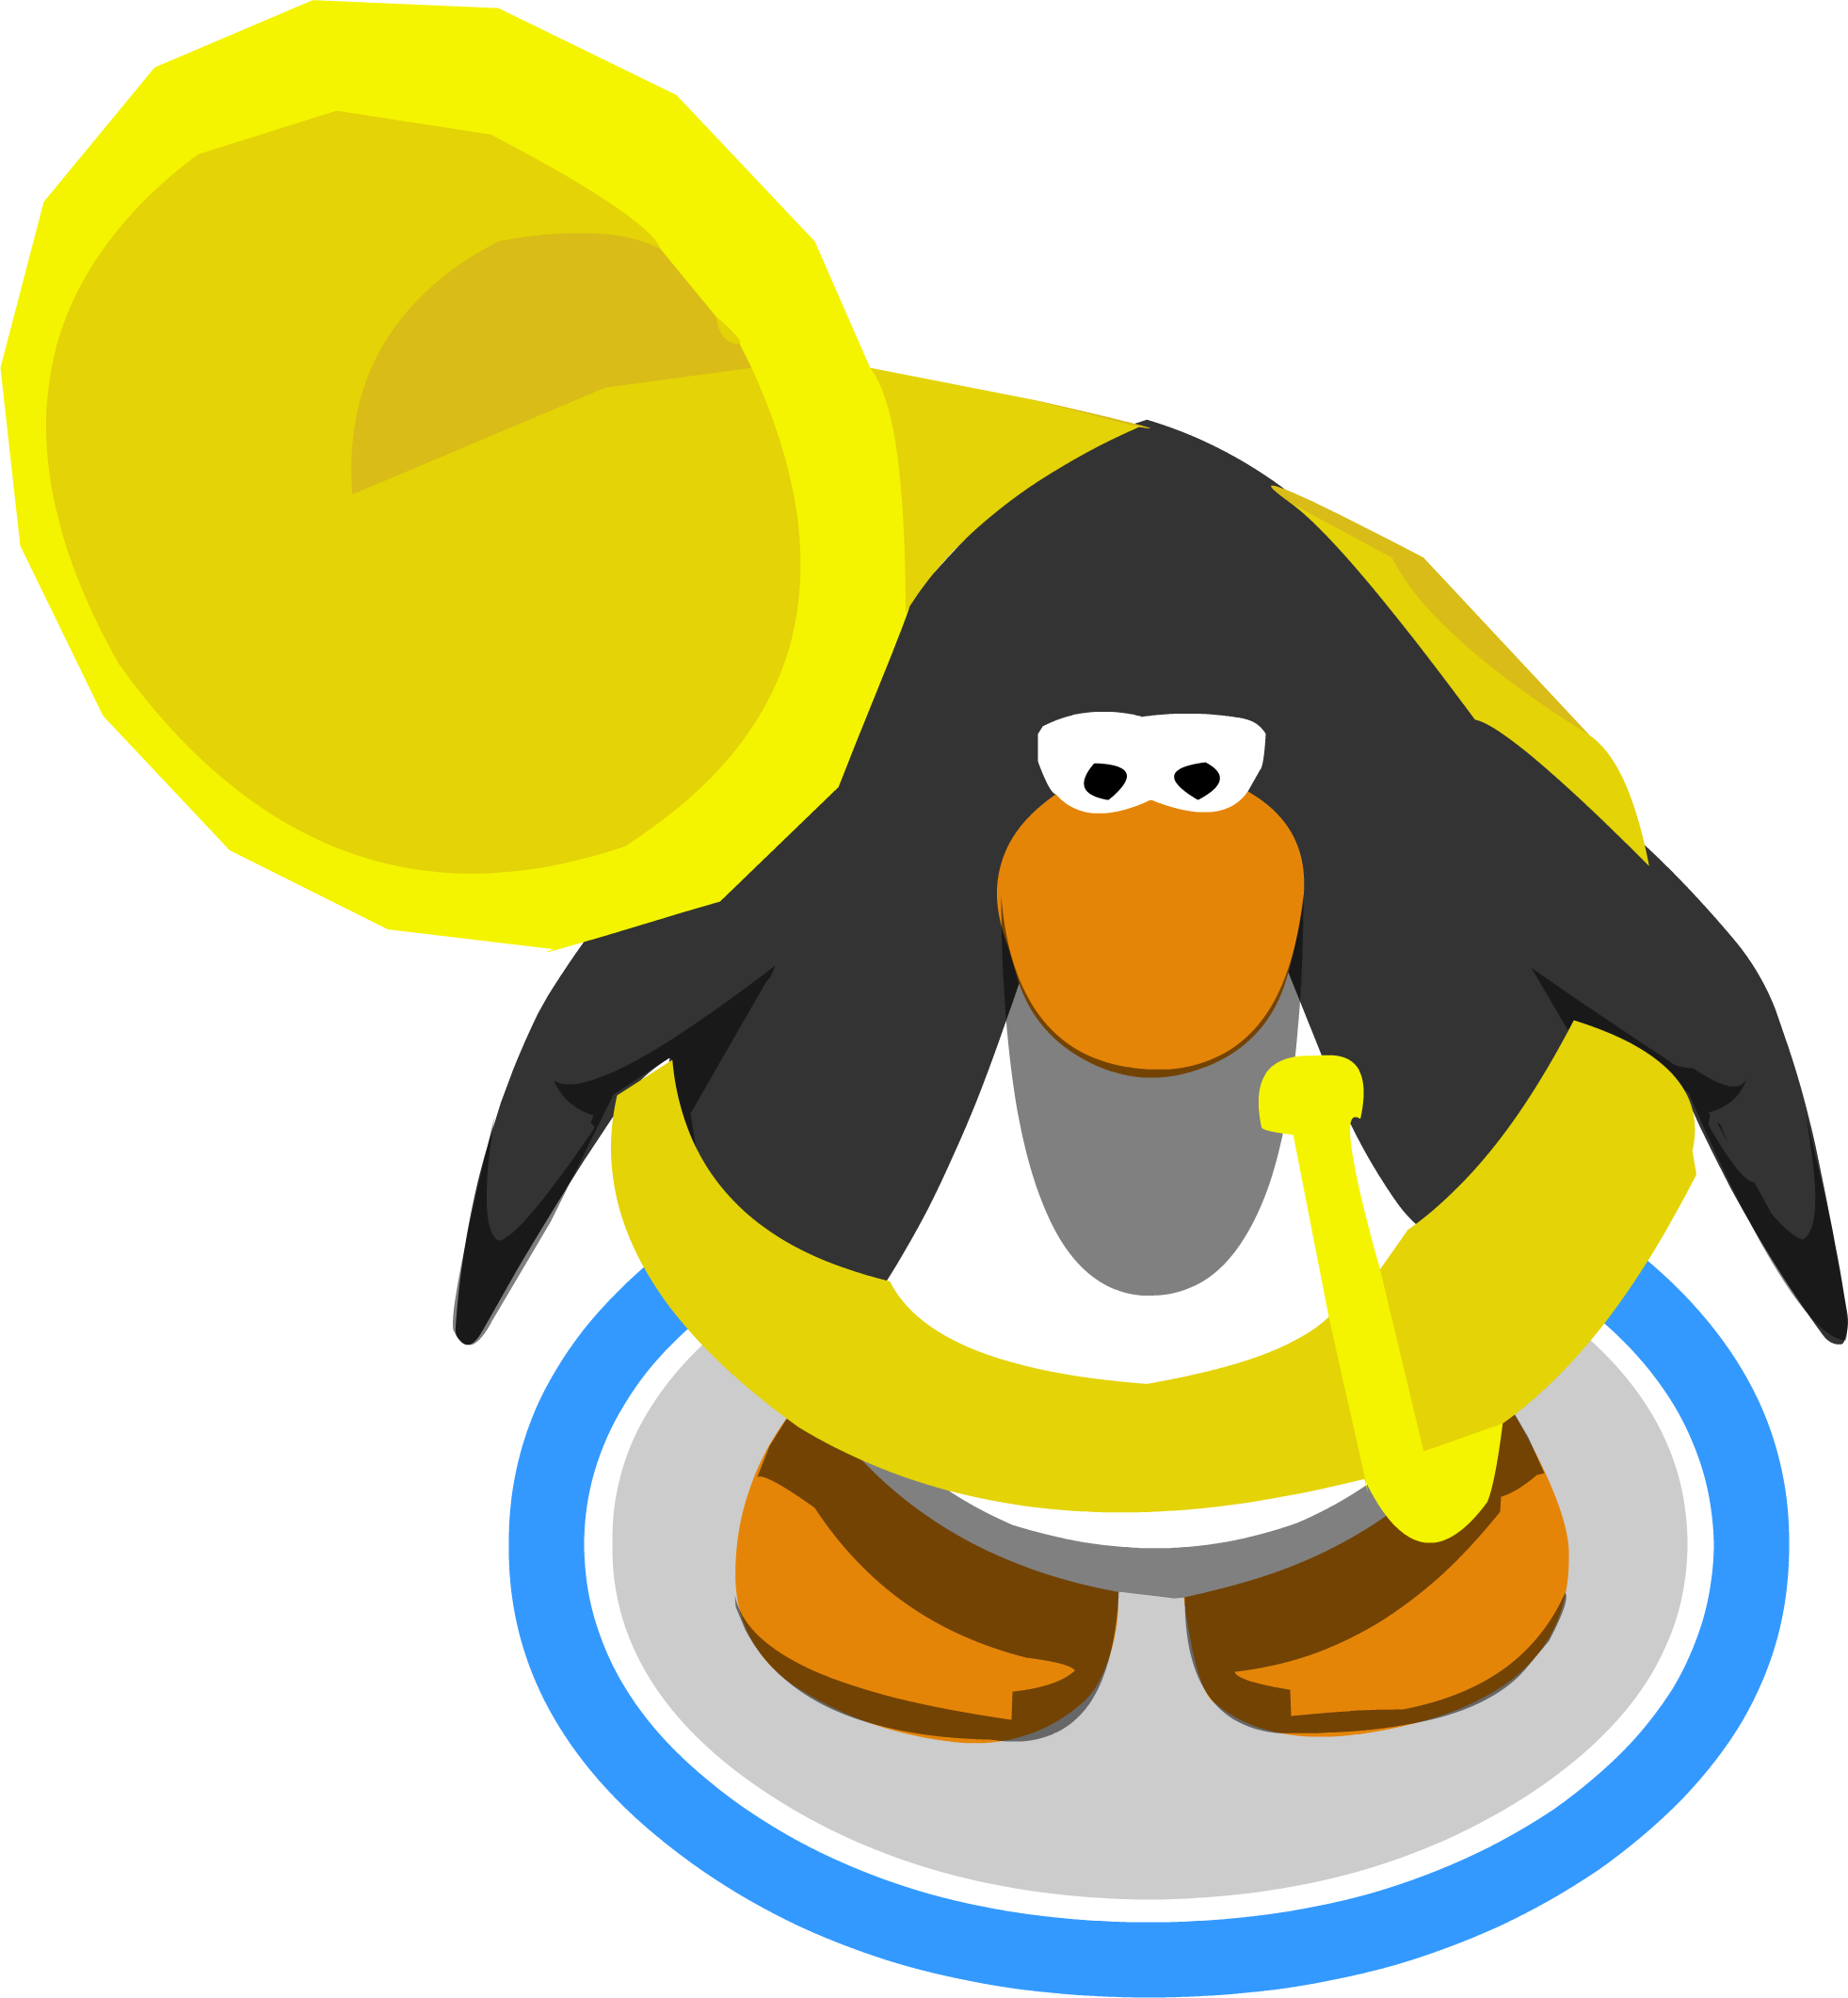 Image in game png. Fart clipart tuba